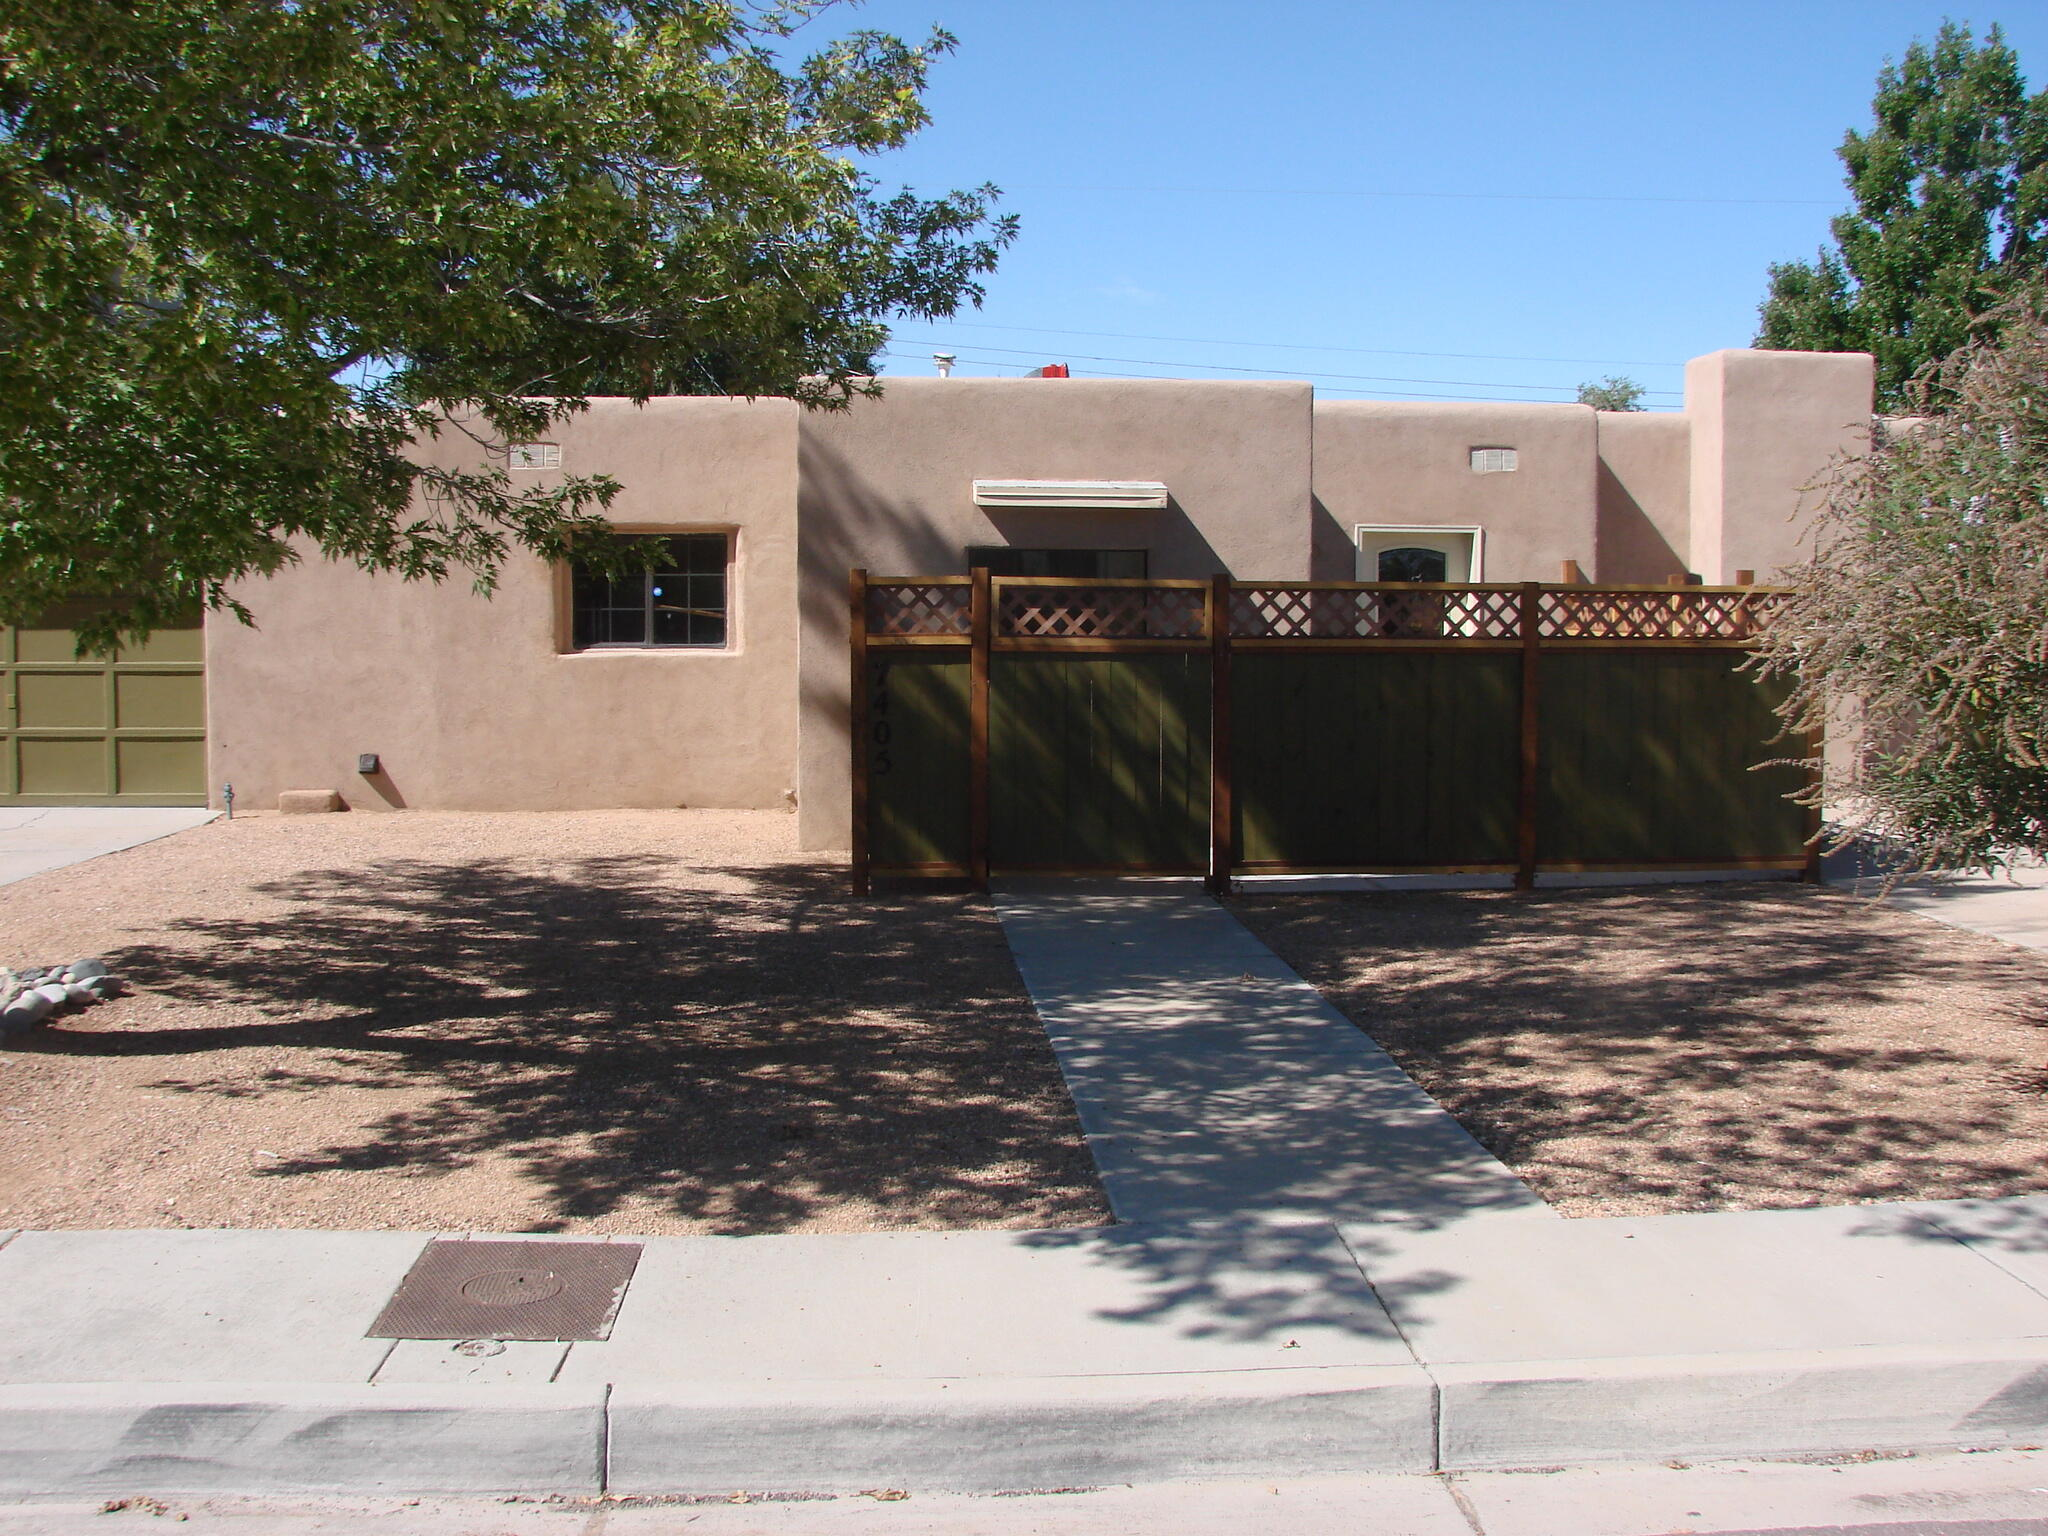 Location! Location! You will love this beautiful completely remodeled home located in a very desirable Uptown neighborhood just walking distance from Trader Joe's and ABQ uptown. Starting with the two separate driveways giving you extra room to park all your boats, trailers, toys! and the private courtyard patio entry, this three bedroom 2 bath home also features a good sized living room and a separate den with a new 9,000 BTU fireplace. Also an office or a fourth bedroom, you decide! New high quality stucco, flooring, paint, doors, appliances and fixtures throughout. A private dining area and a new Lennox refrigerated air and heating system. You are going to love living in Uptown. Take the nice feeling you get in this beautiful move in ready home and make it yours today!